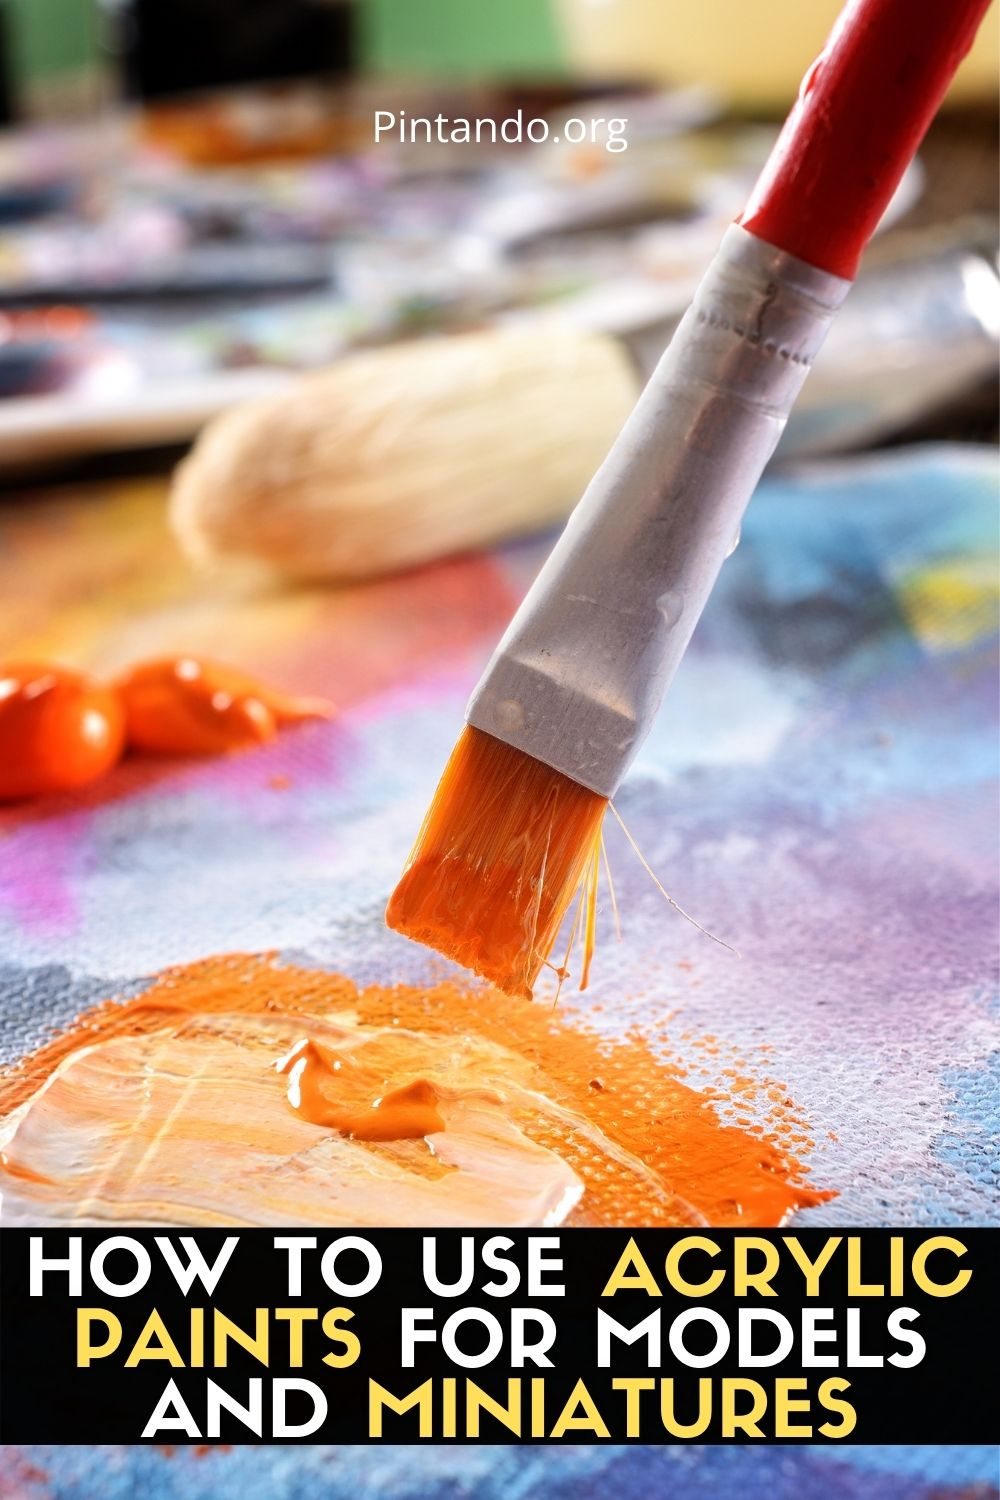 HOW TO USE ACRYLIC PAINTS FOR MODELS AND MINIATURES